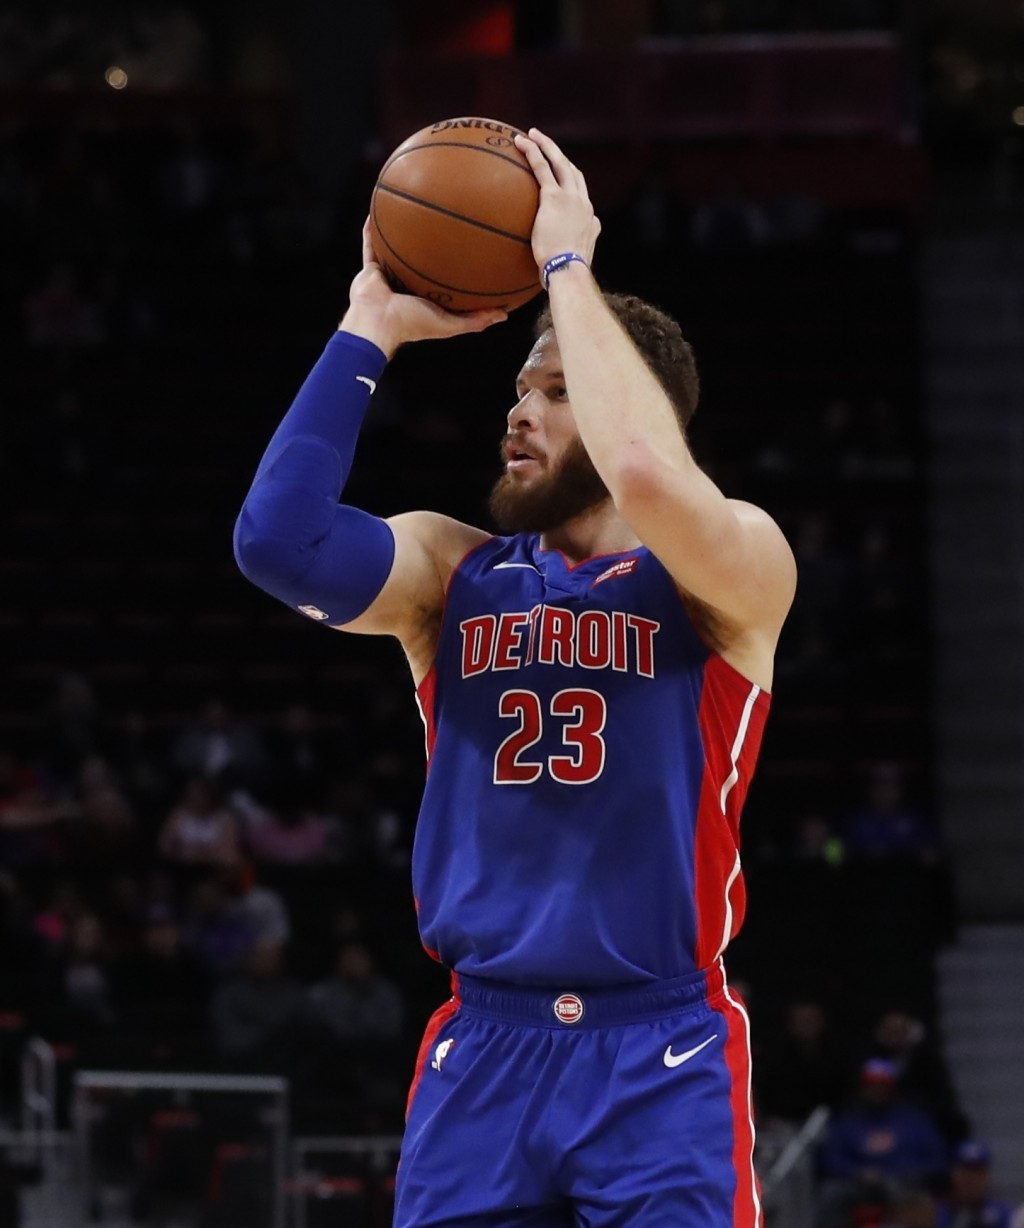 Detroit Pistons forward Blake Griffin shoots during the first half of an NBA basketball game against the Washington Wizards, Monday, Feb. 11, 2019, in